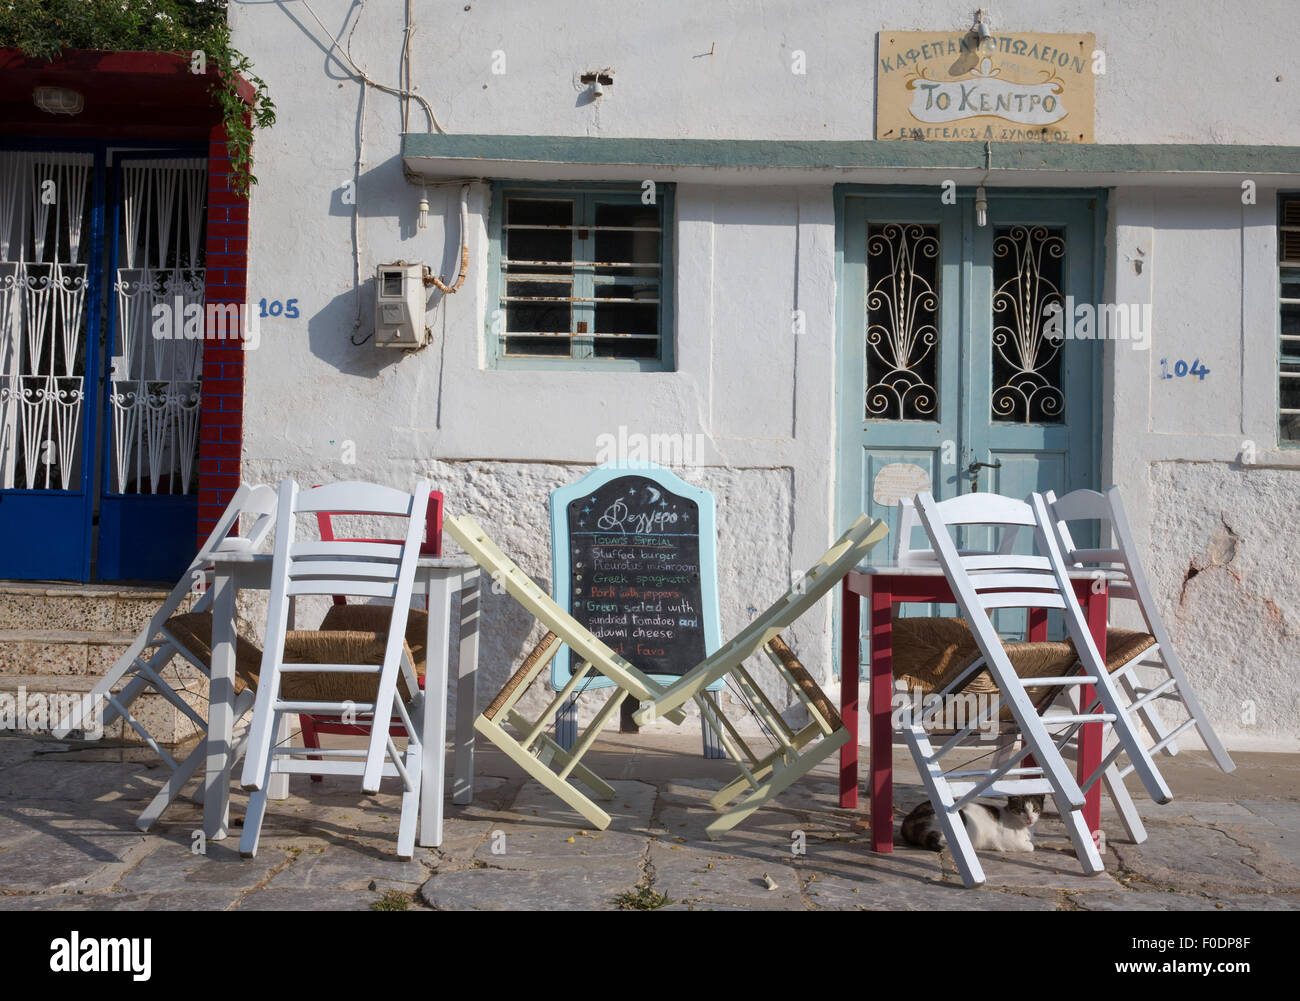 Greek Kafeneon closed.A sign of poor tourism as austerity kicks in following the bail-out and European sovereign - Stock Image